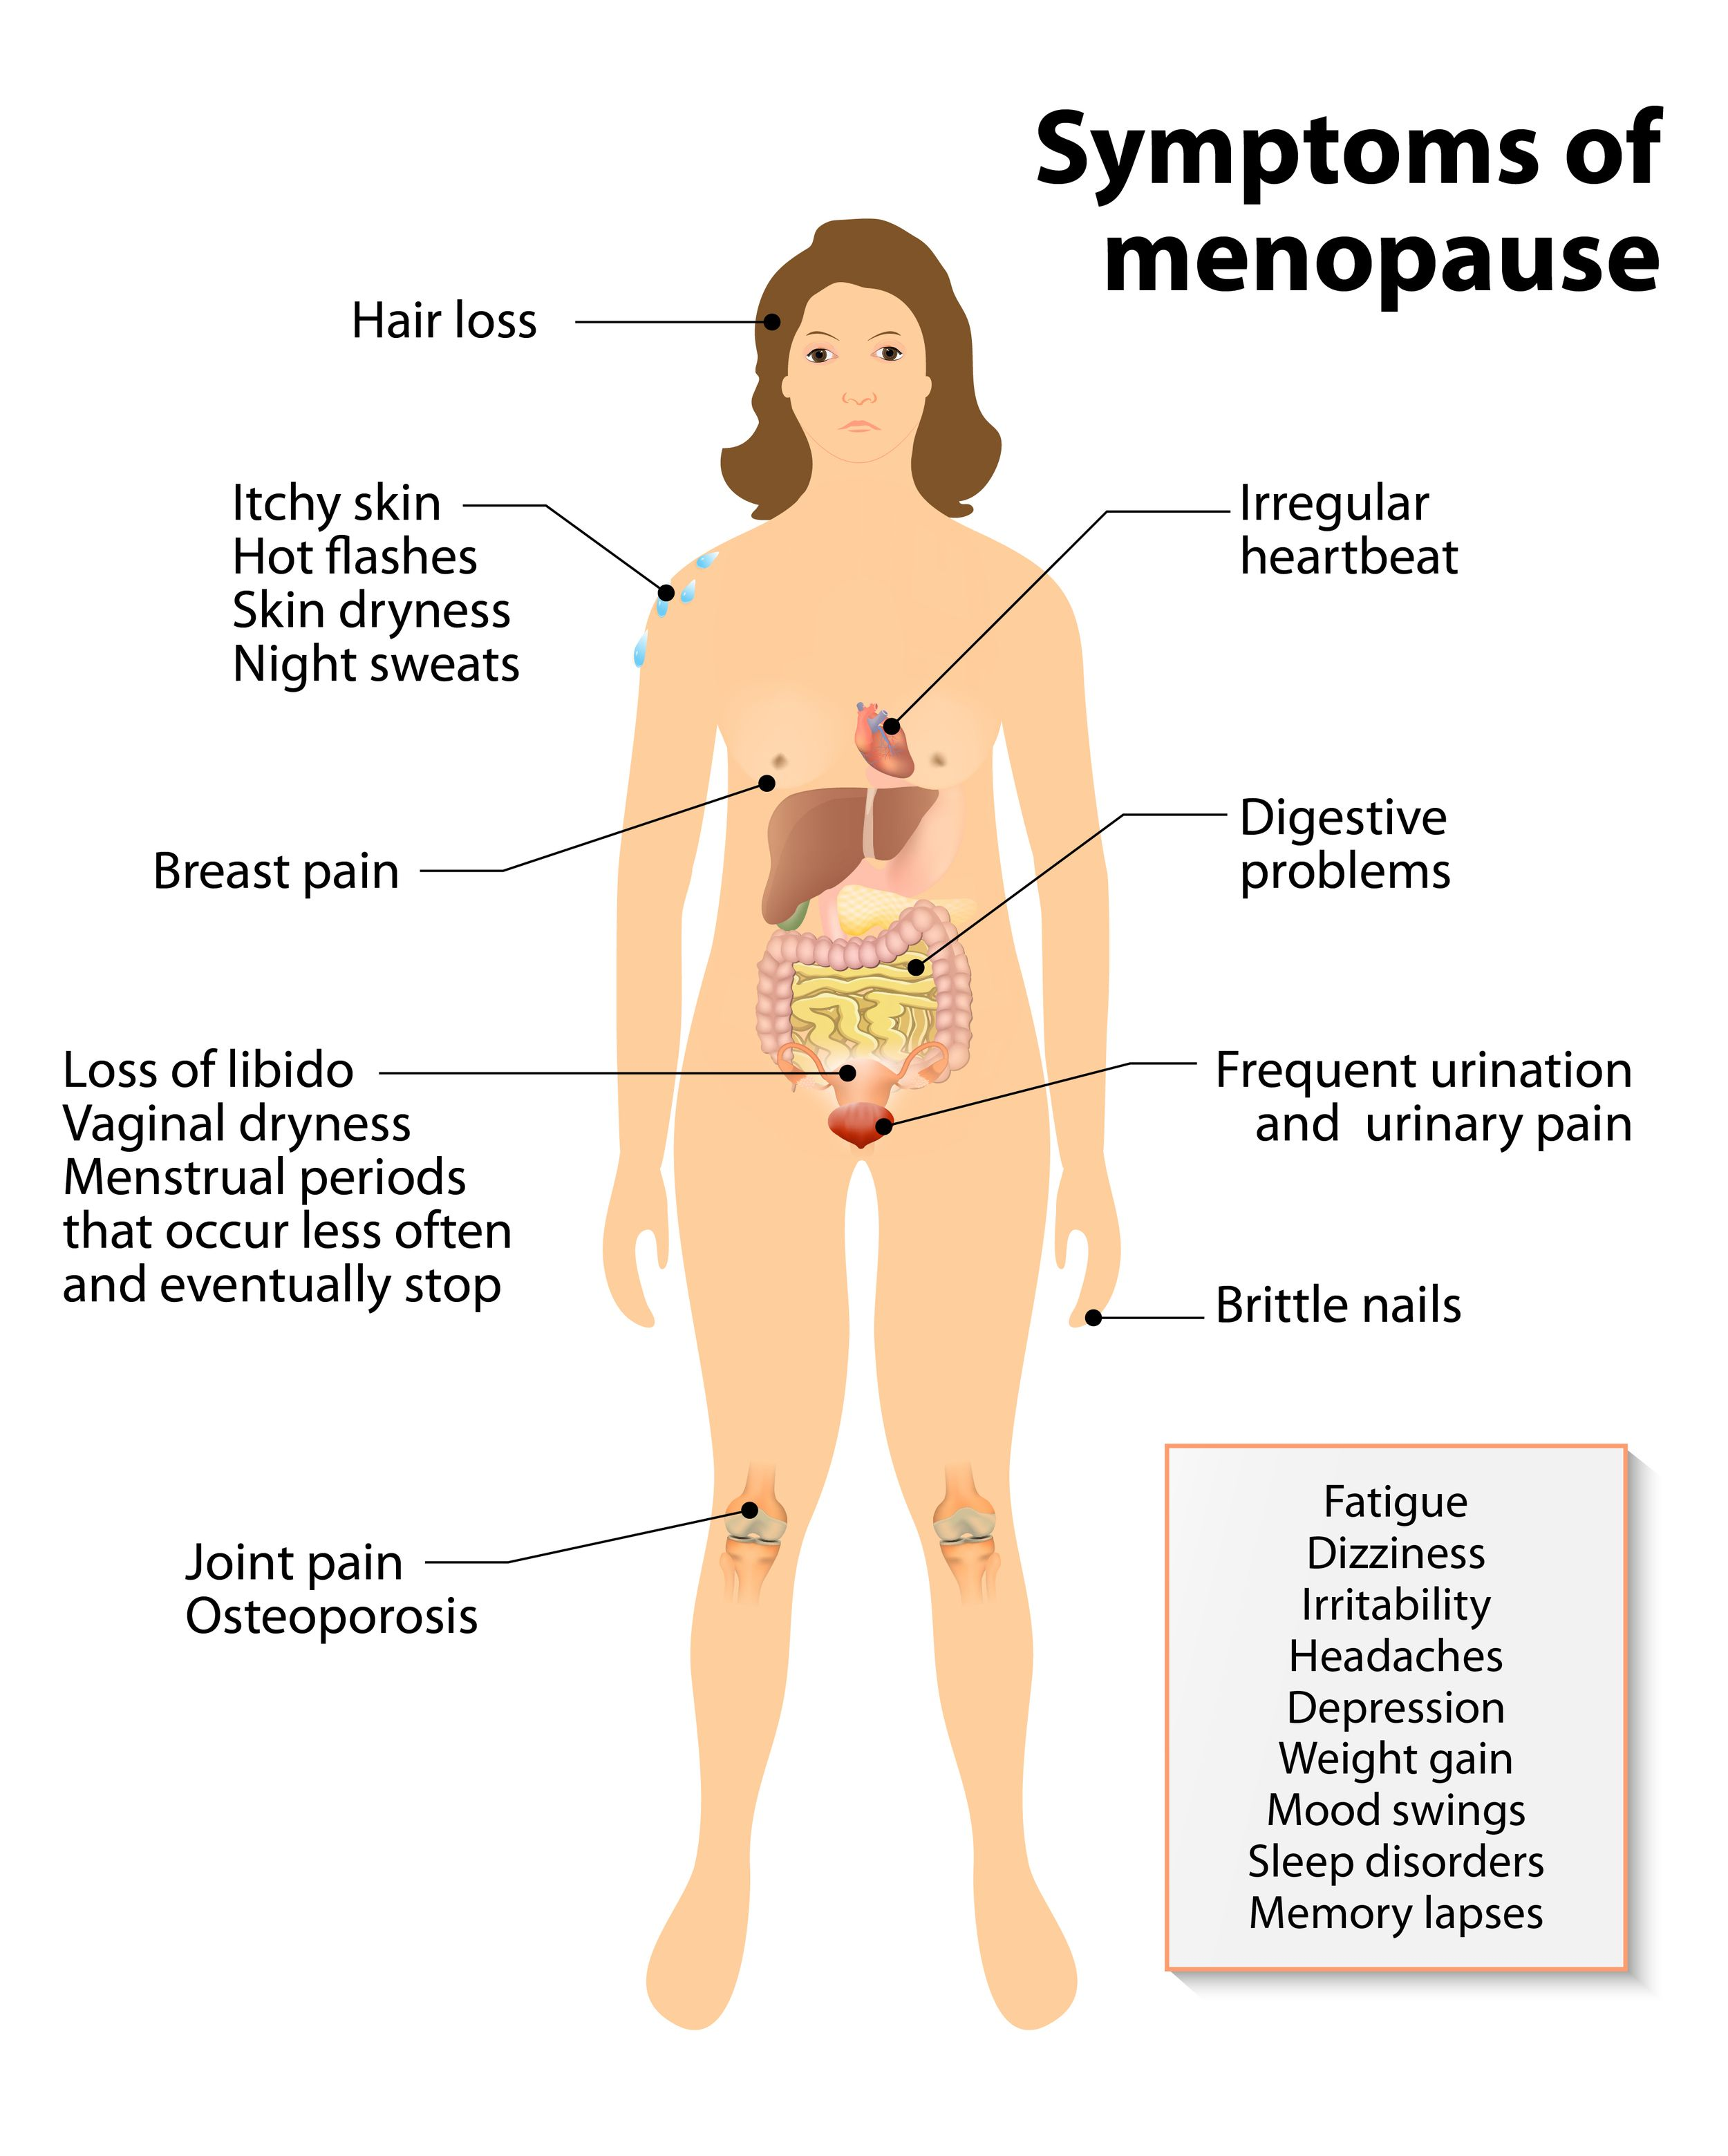 Symptoms of Menopause: Hot Flashes and Night Sweats, How